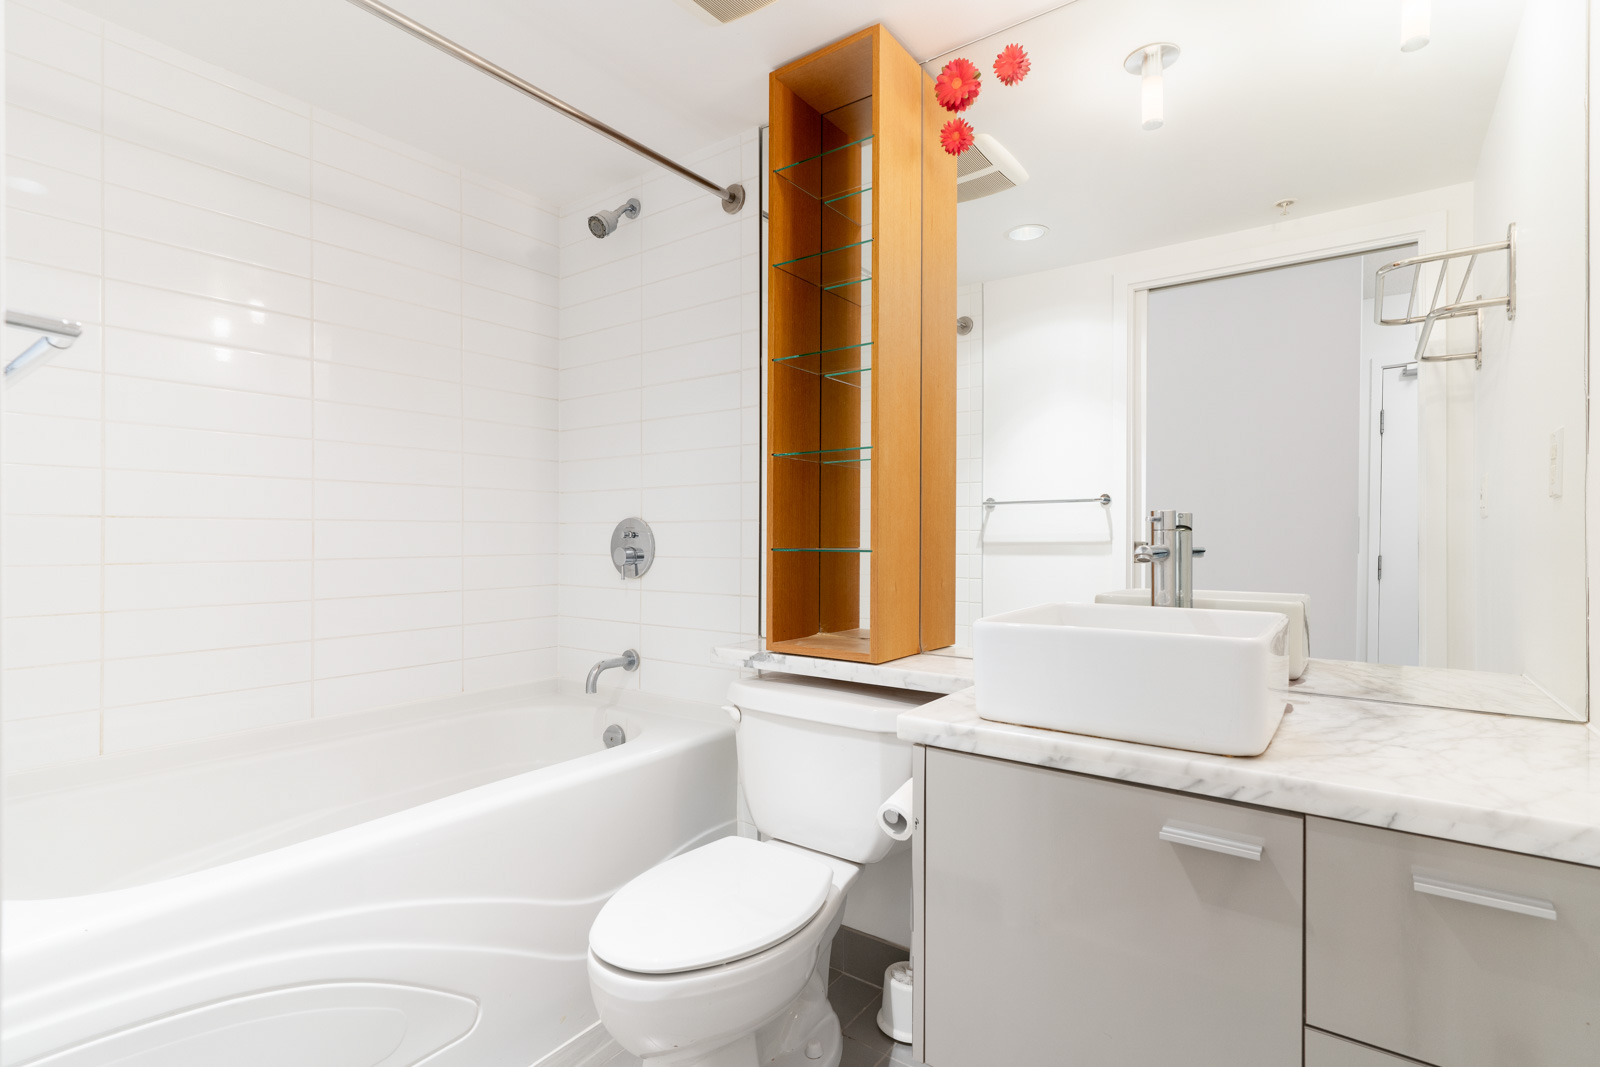 Full bathroom with white wall and tub